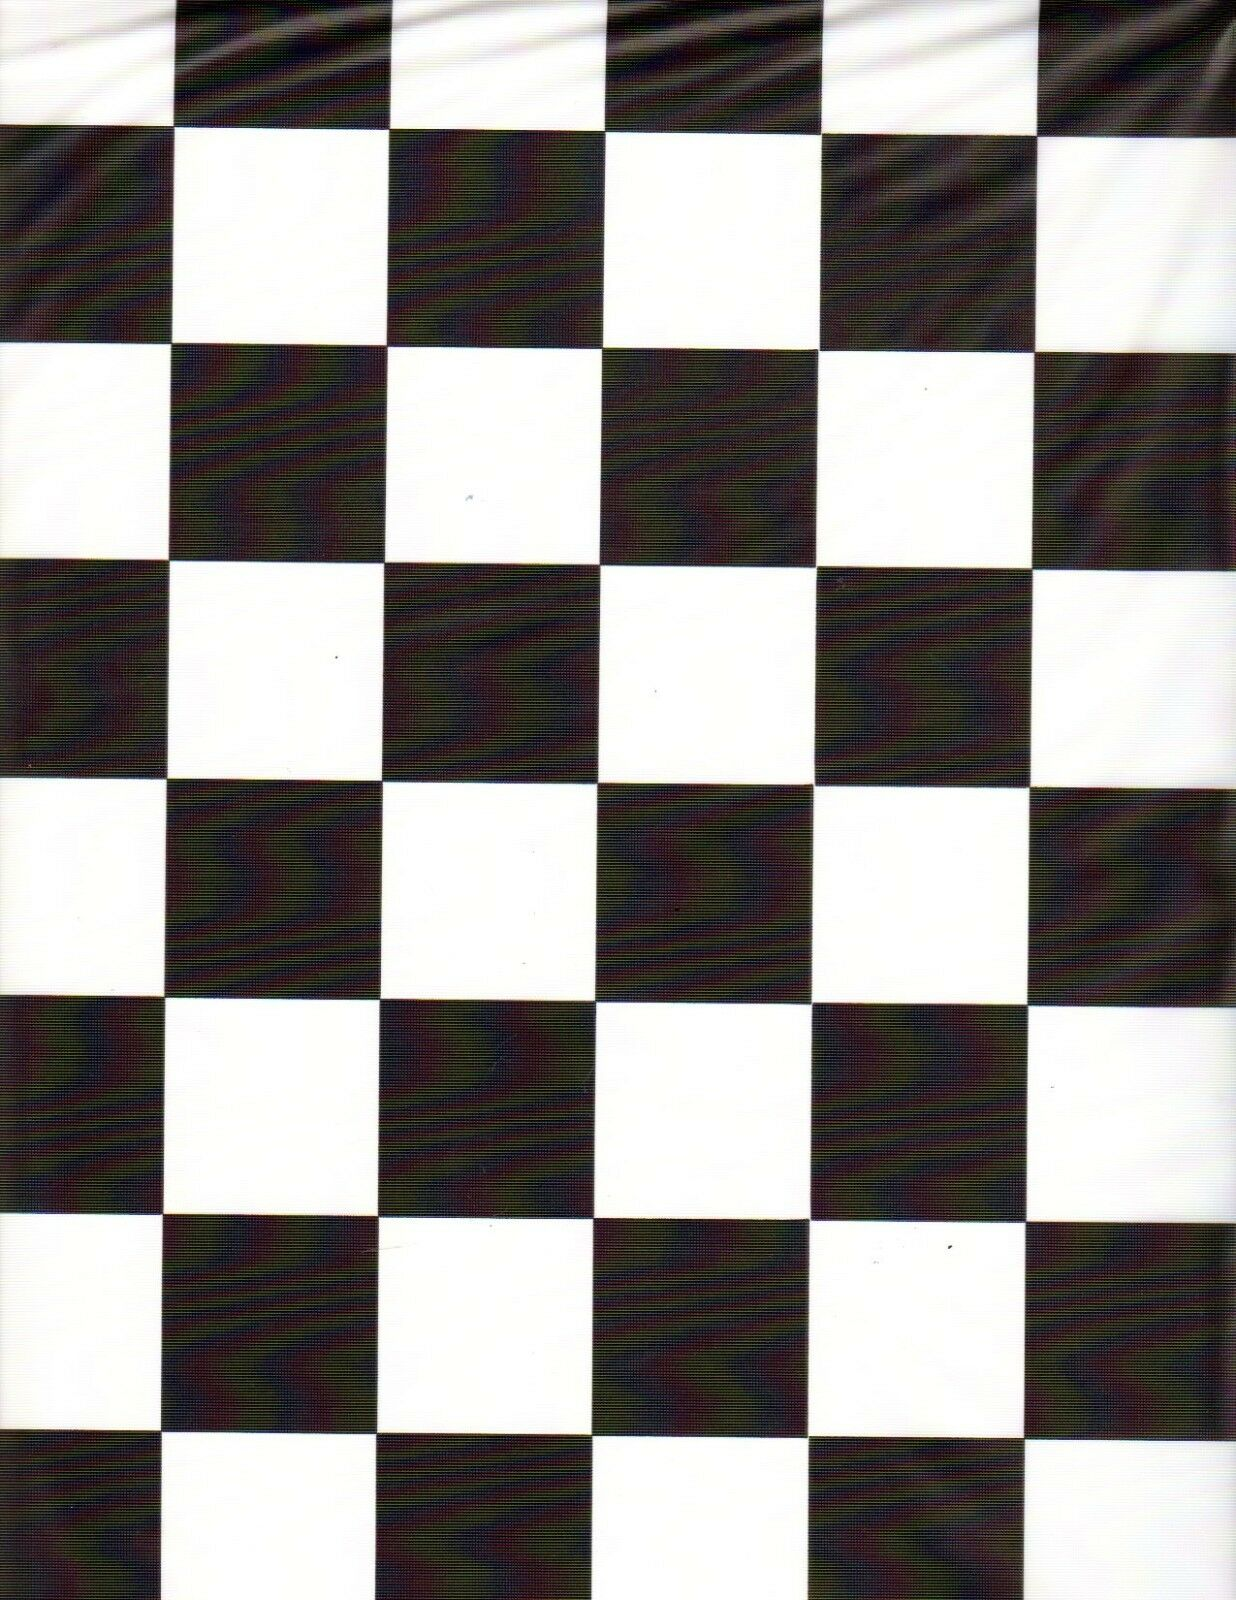 Black and White Checker table cover tablecloth plastic 84""